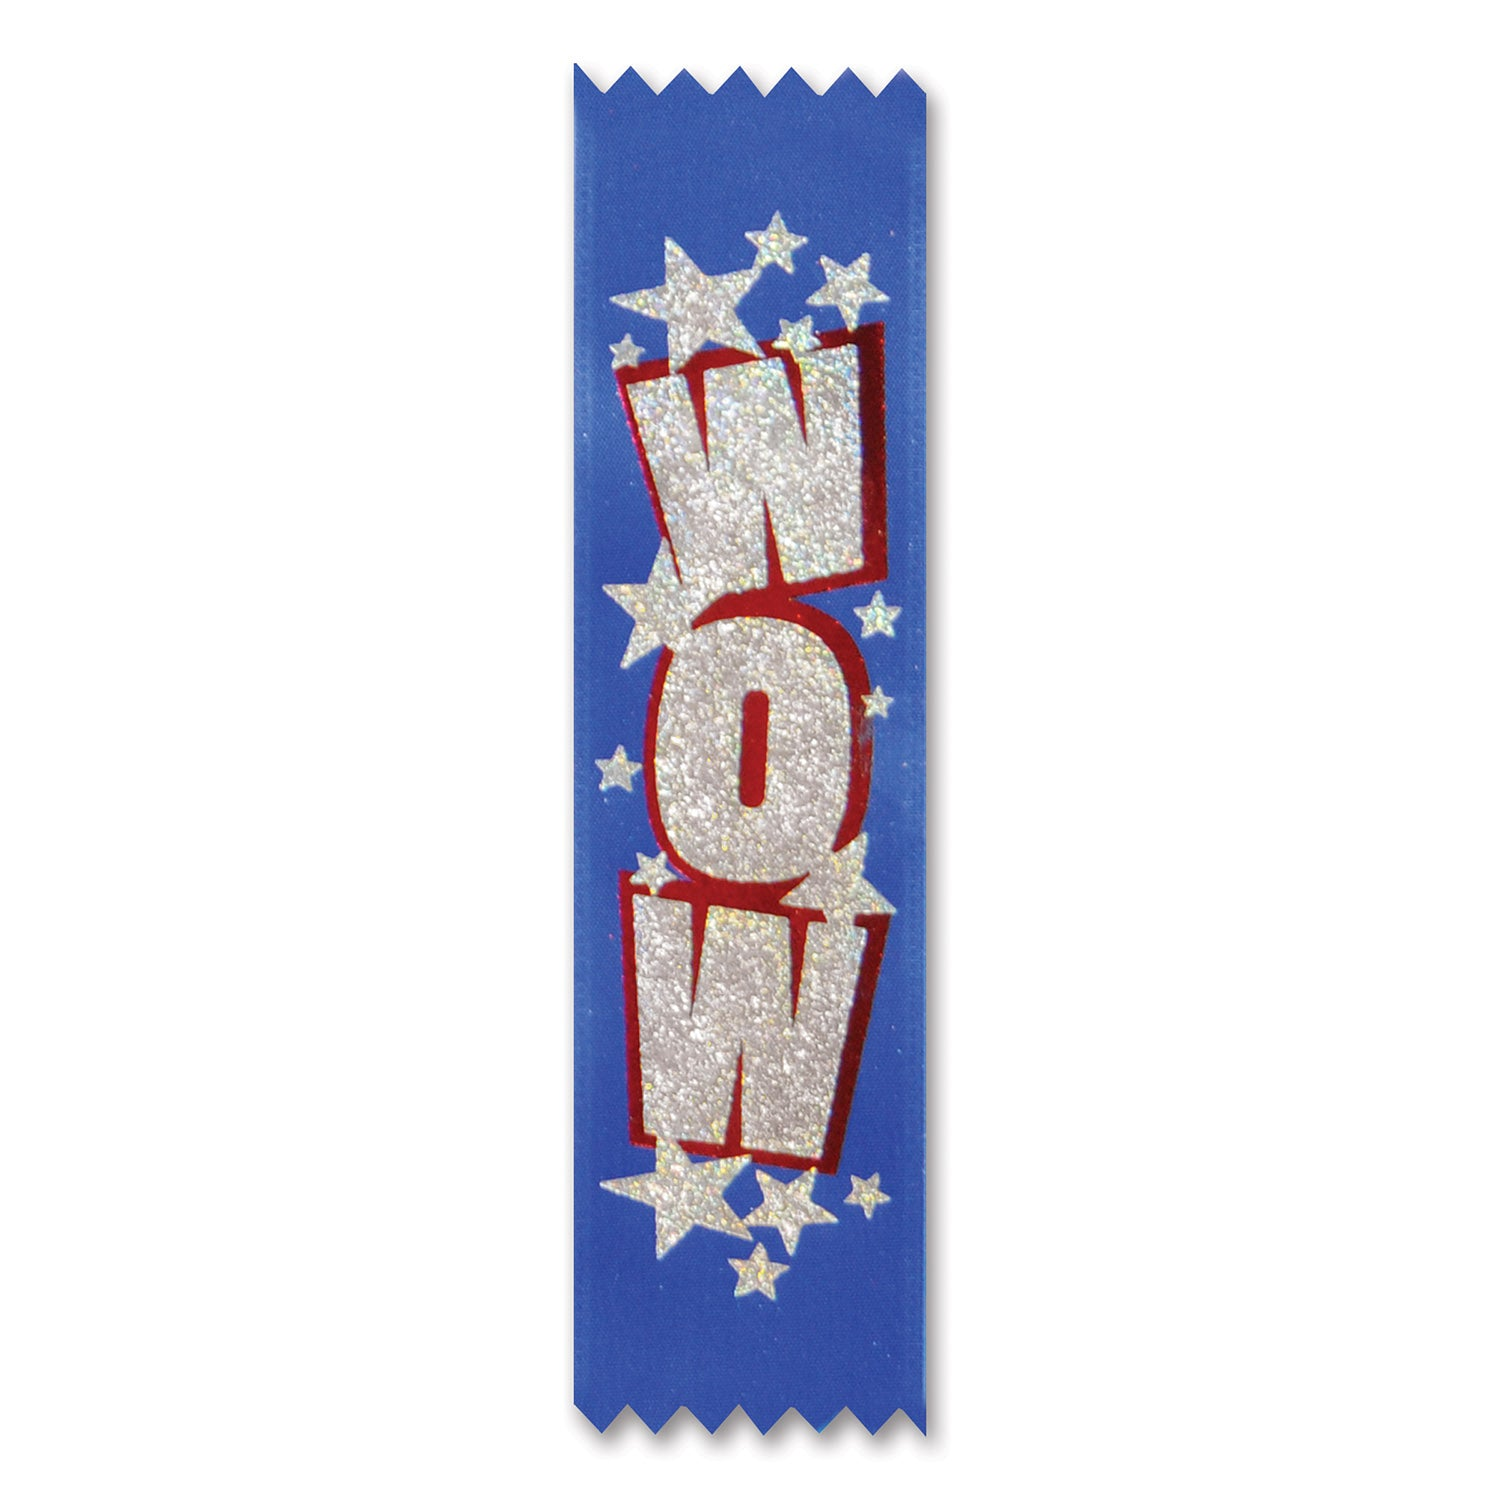 Wow Value Pack Ribbons (10/Pkg) by Beistle - School Awards and Supplies Decorations